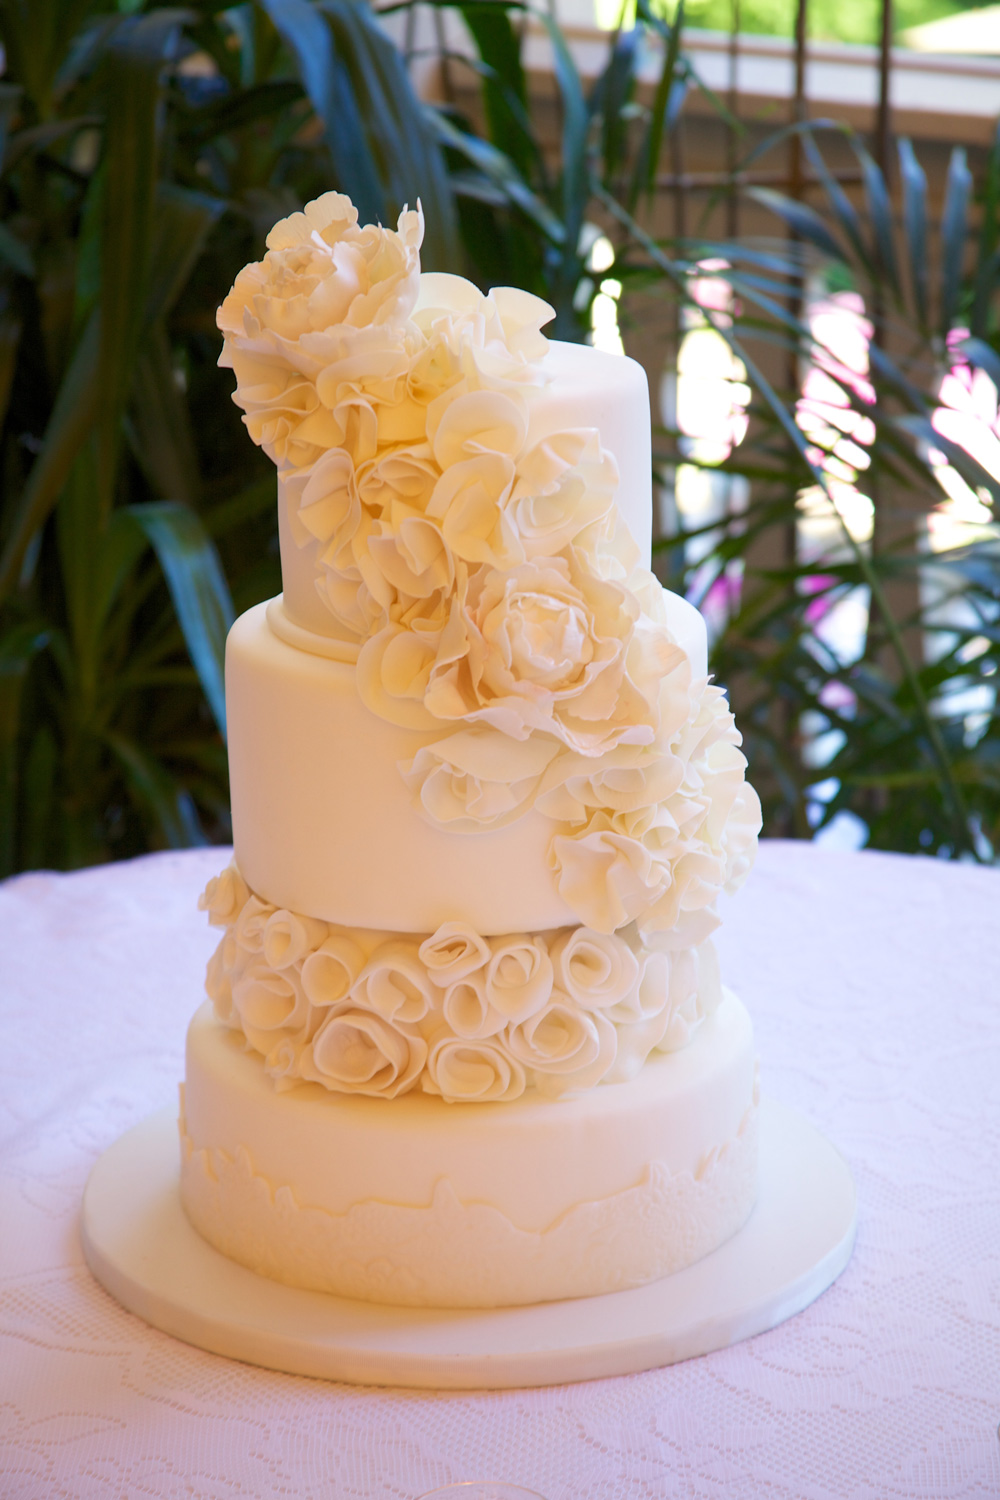 patisserie_angelica_fondant_white_floral.jpg